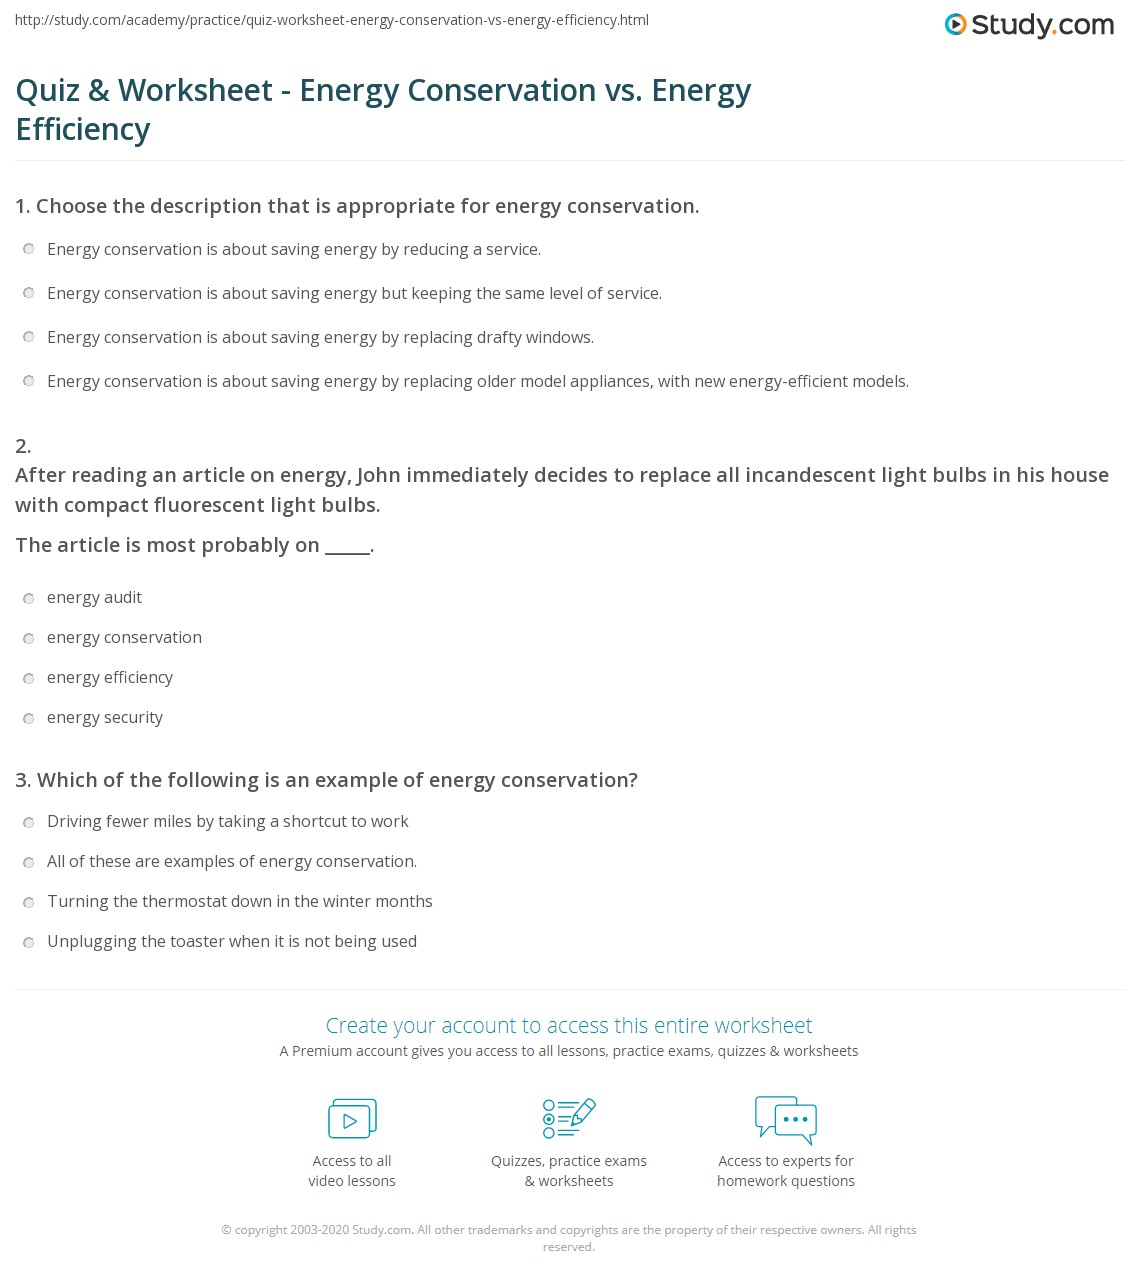 Quiz & Worksheet - Energy Conservation vs. Energy Efficiency | Study.com